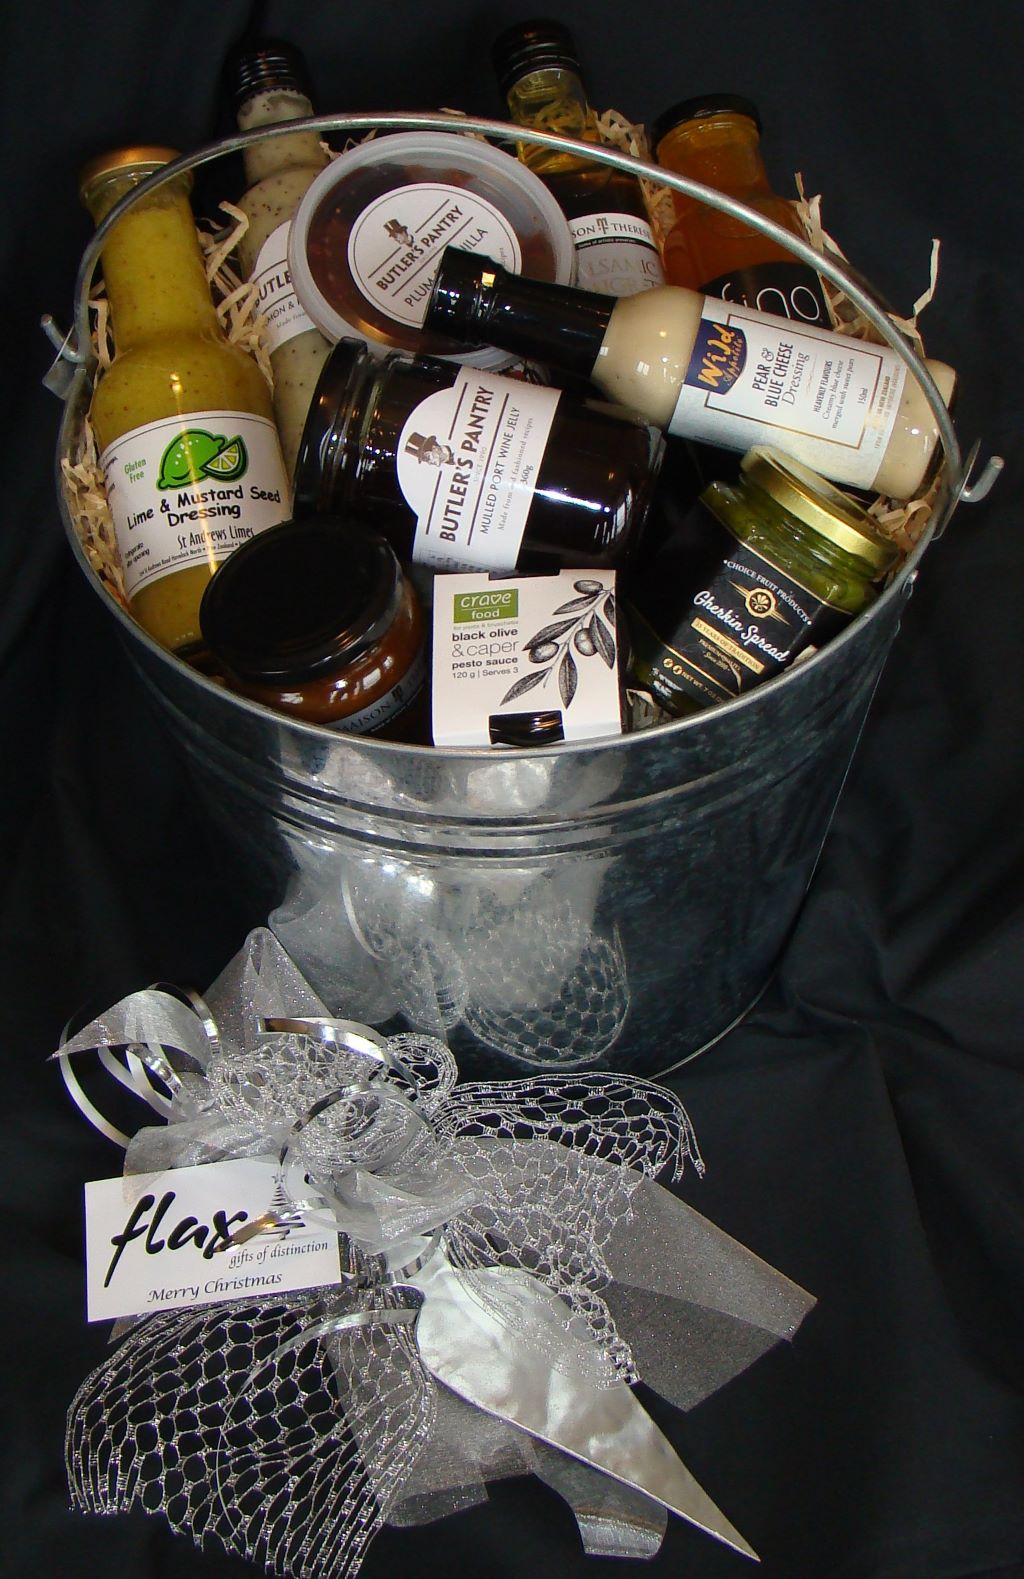 Flax gifts of distinction marshland christchurch same day delivery within christchurch visa and mastercard accepted gluten free options available negle Choice Image